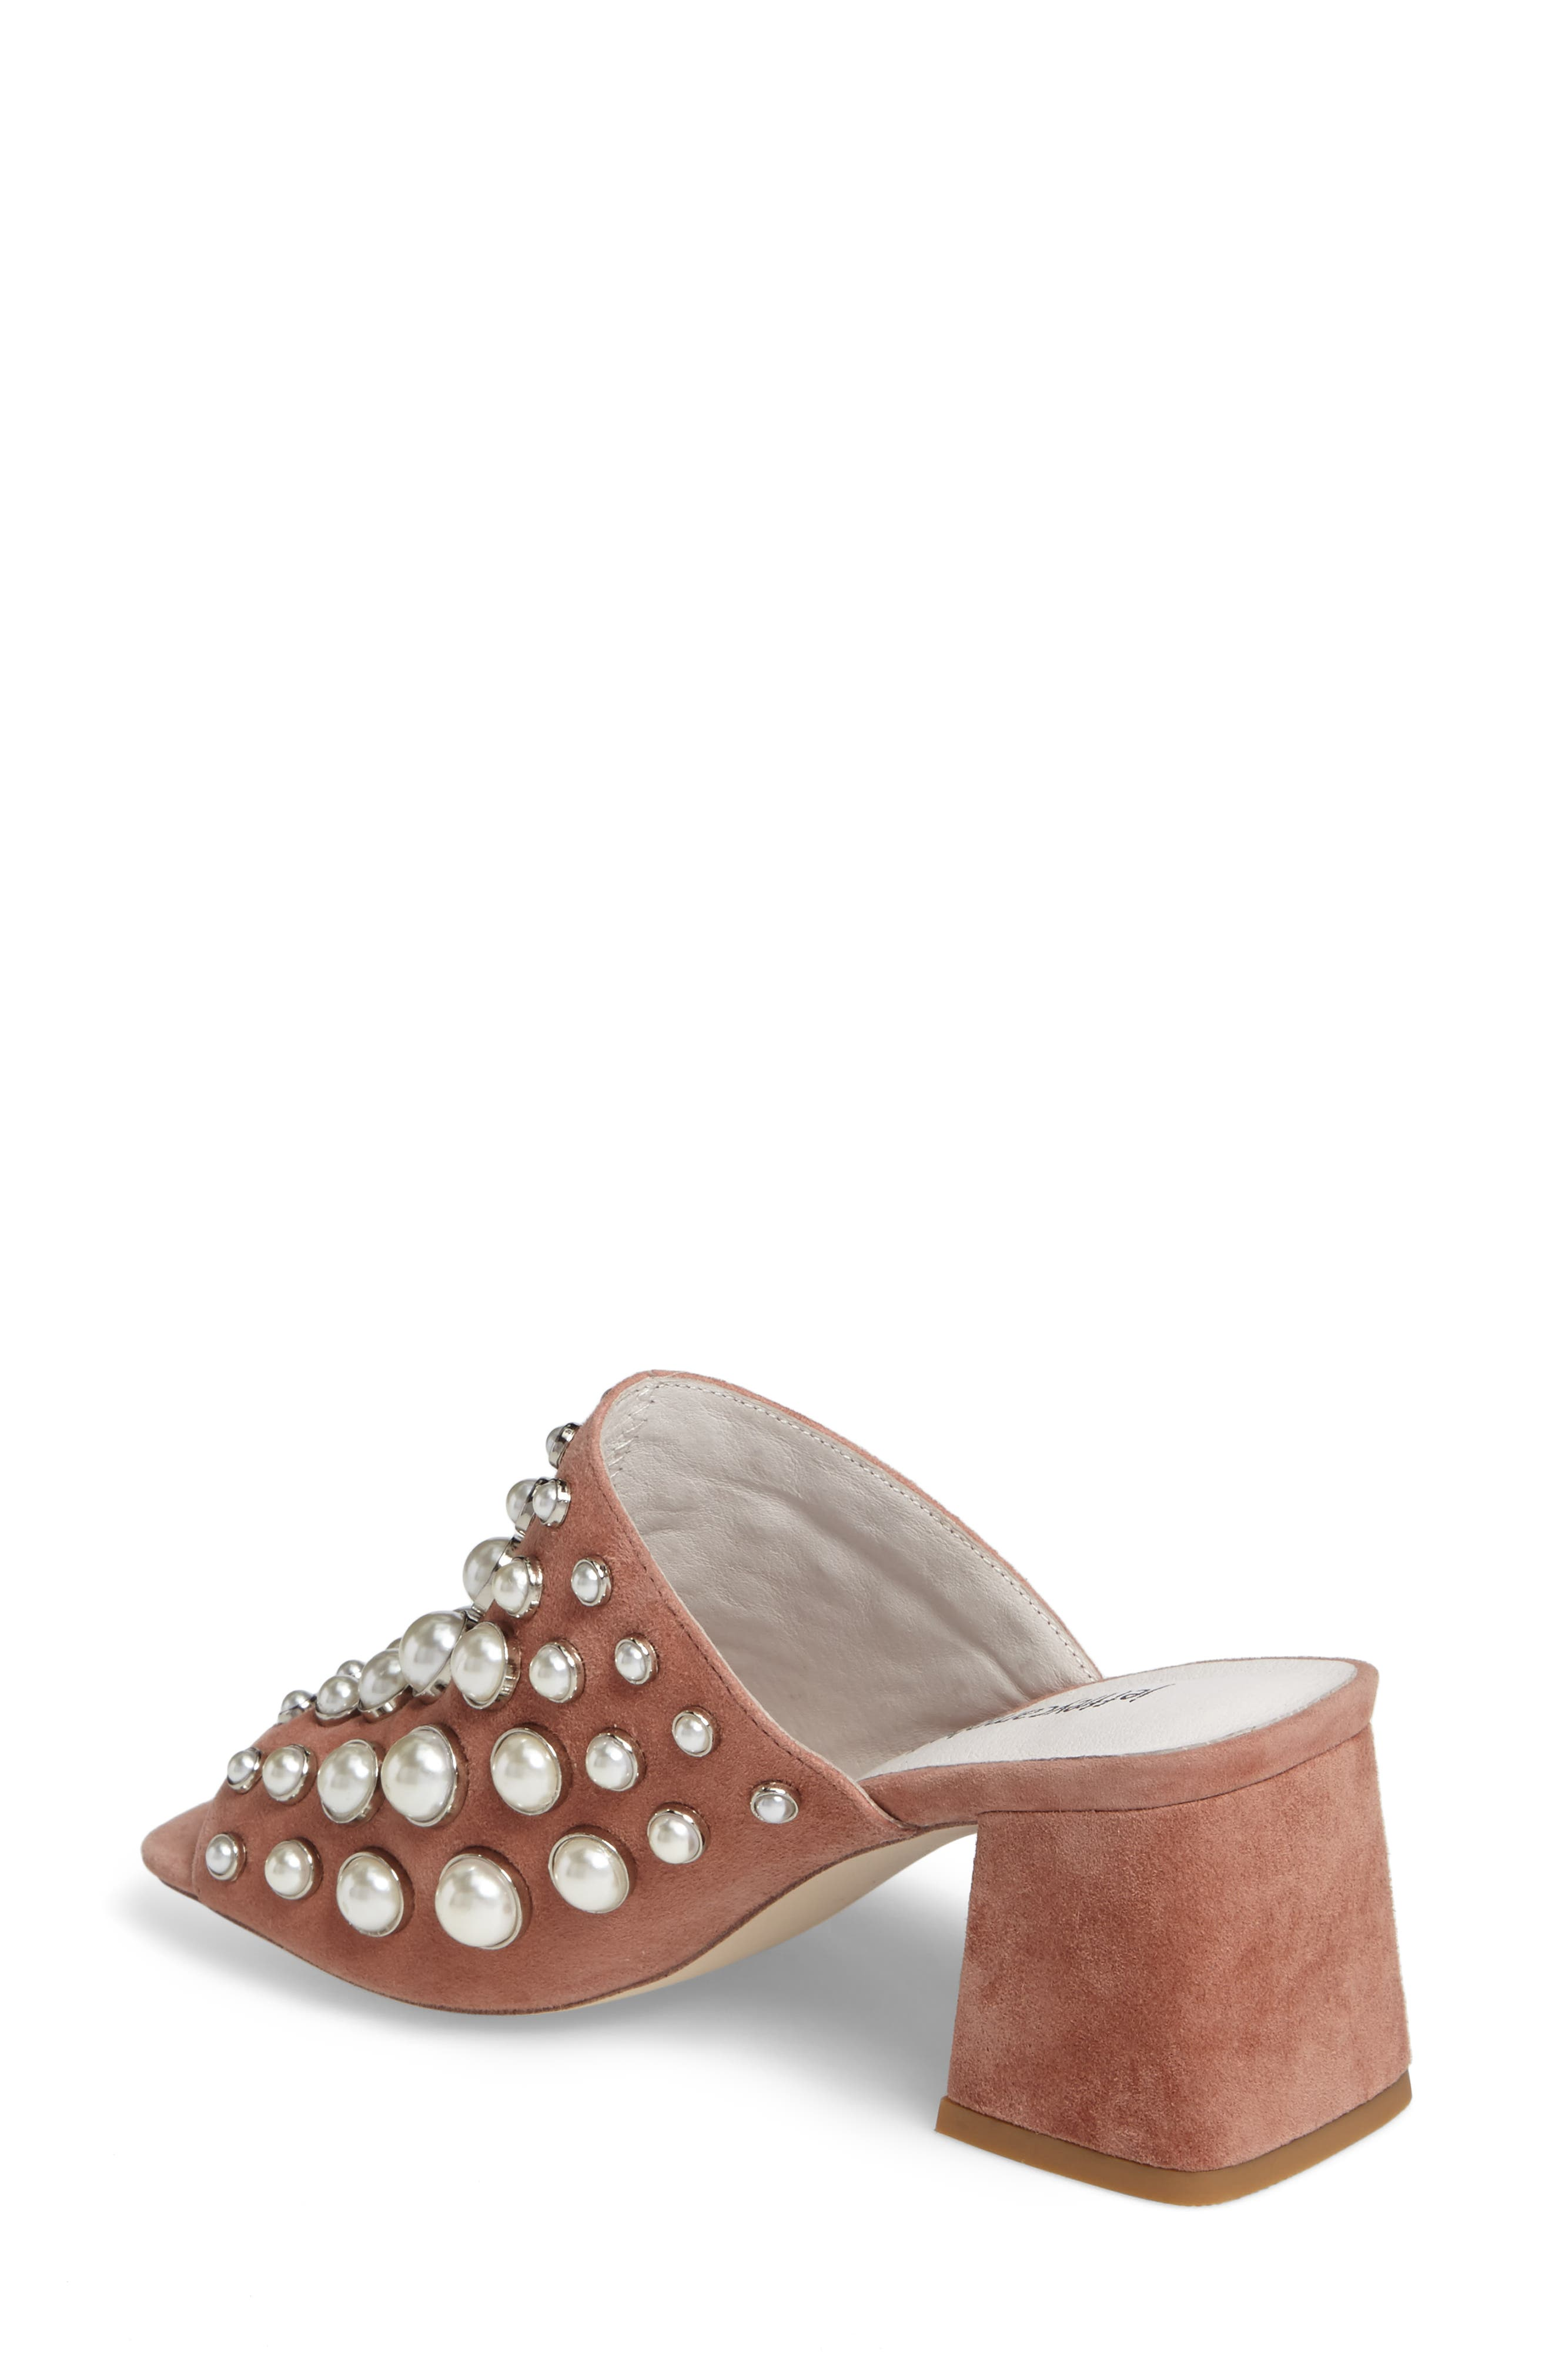 Perpetua Dome Stud Open-Toe Mule,                             Alternate thumbnail 2, color,                             Pink Suede Combo